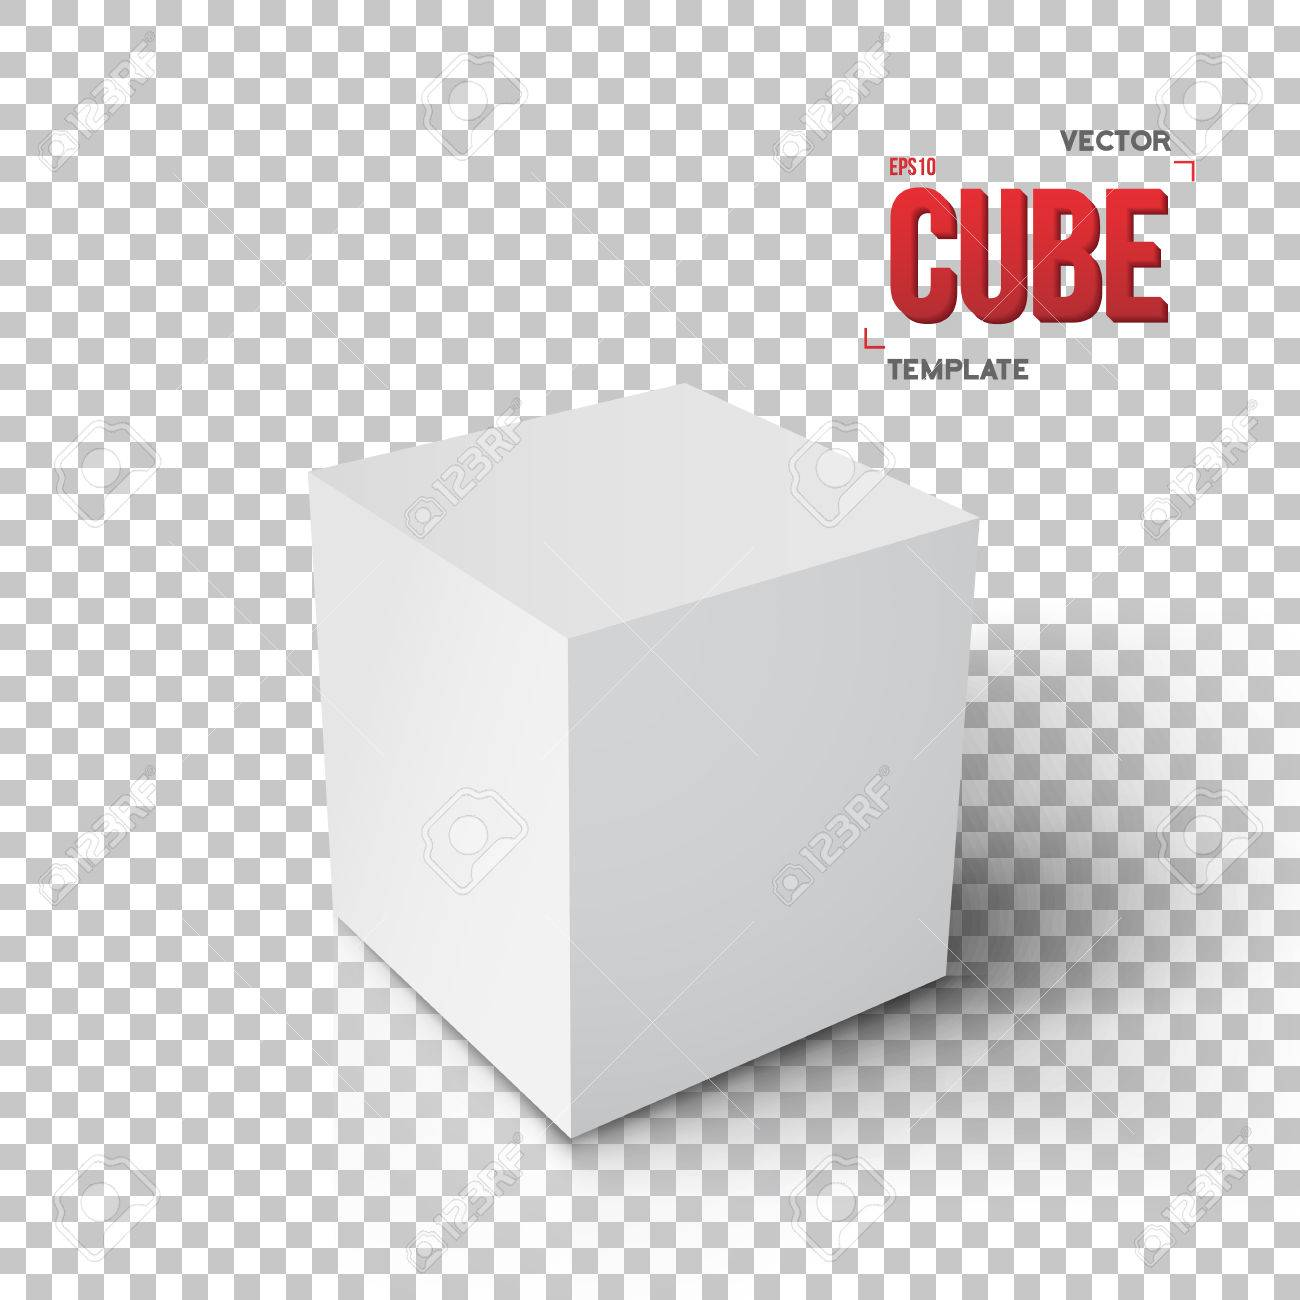 Illustration of realistic cube templateey paper cube isolated illustration of realistic cube templateey paper cube isolated on transparent ps style background stock pronofoot35fo Image collections